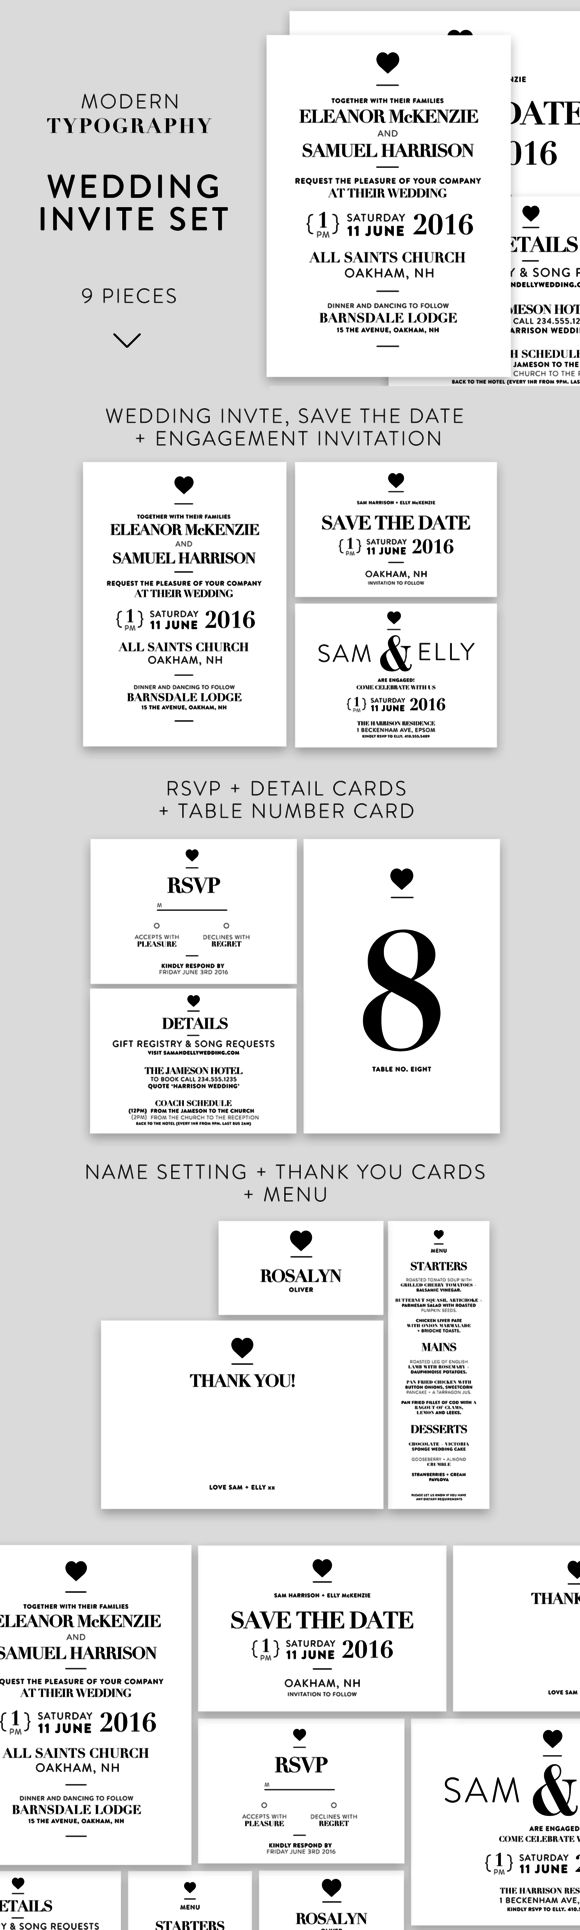 Modern Typography Wedding Invite Set by Wednesday Designs on @creativemarket